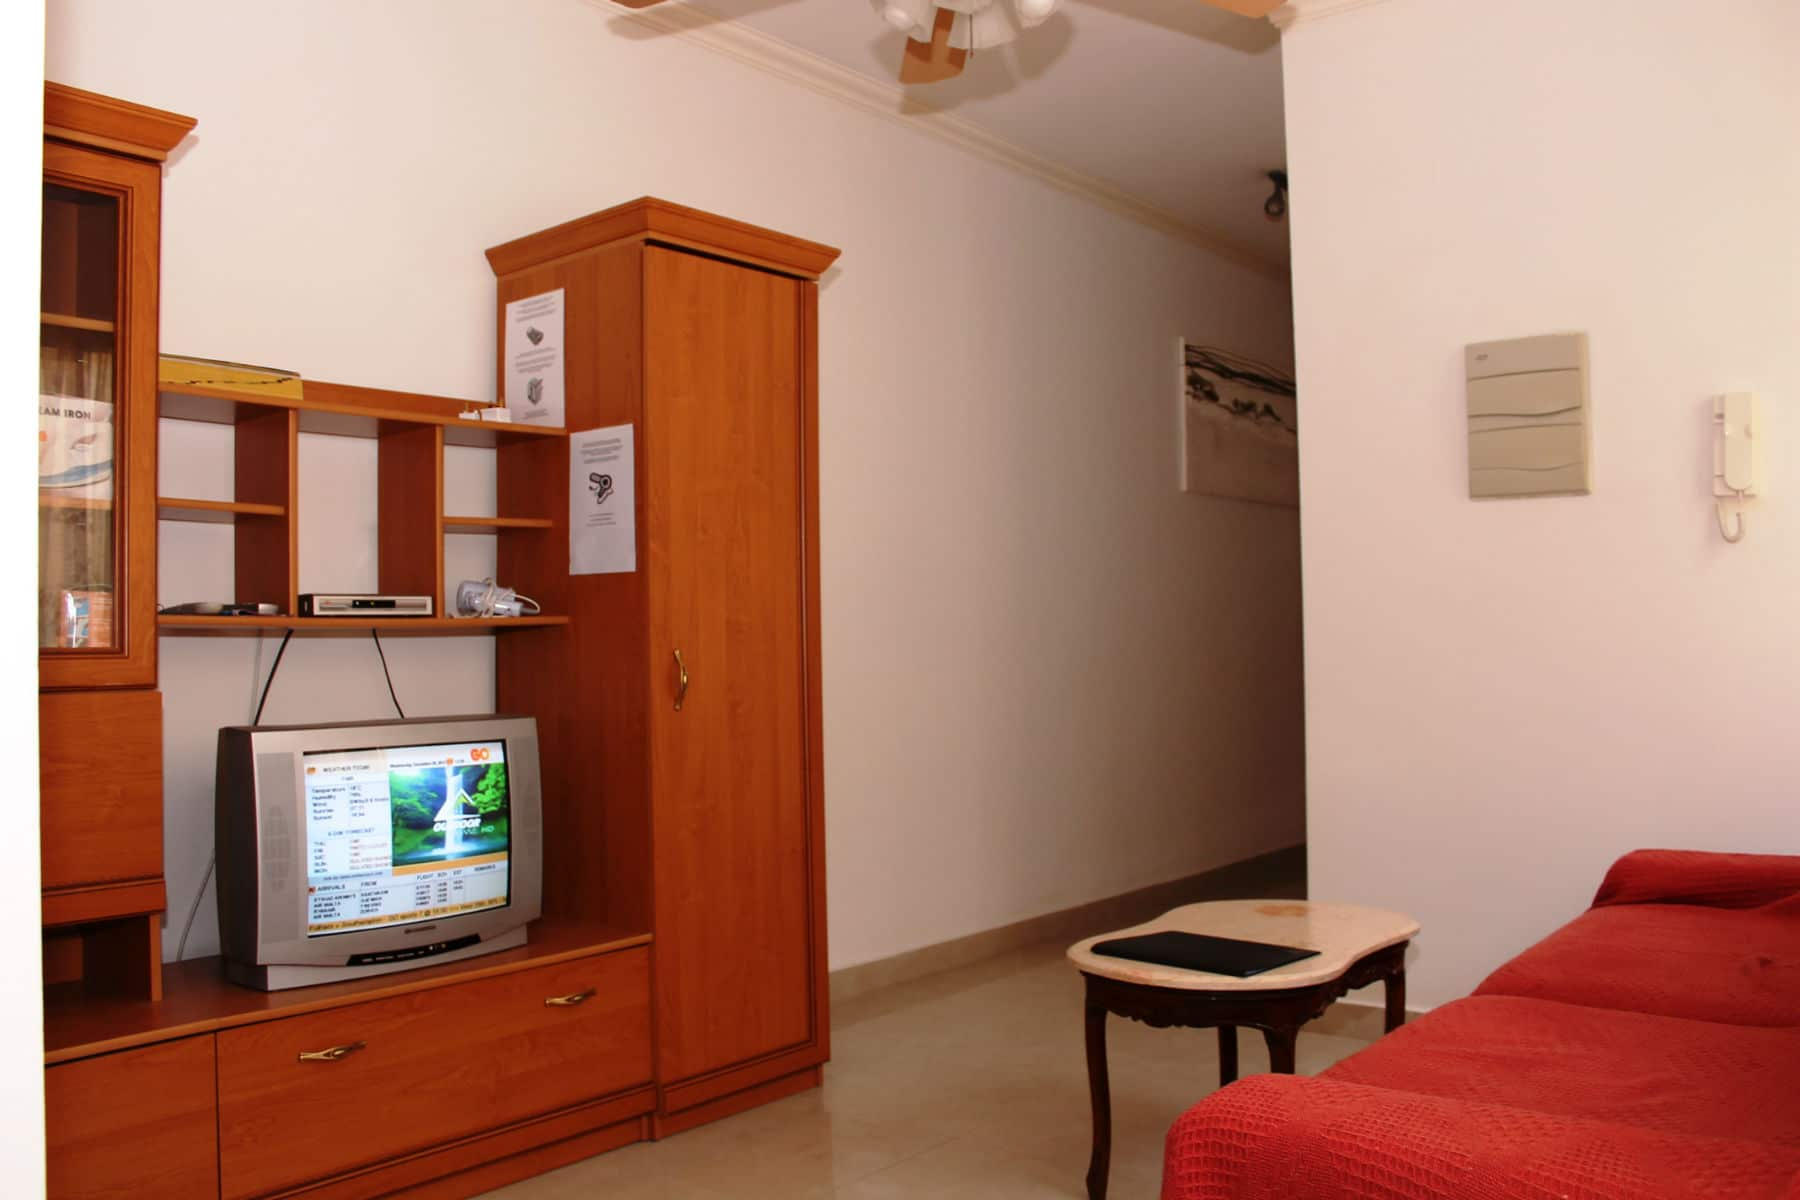 Small sitting area with free IPTV and WiFi